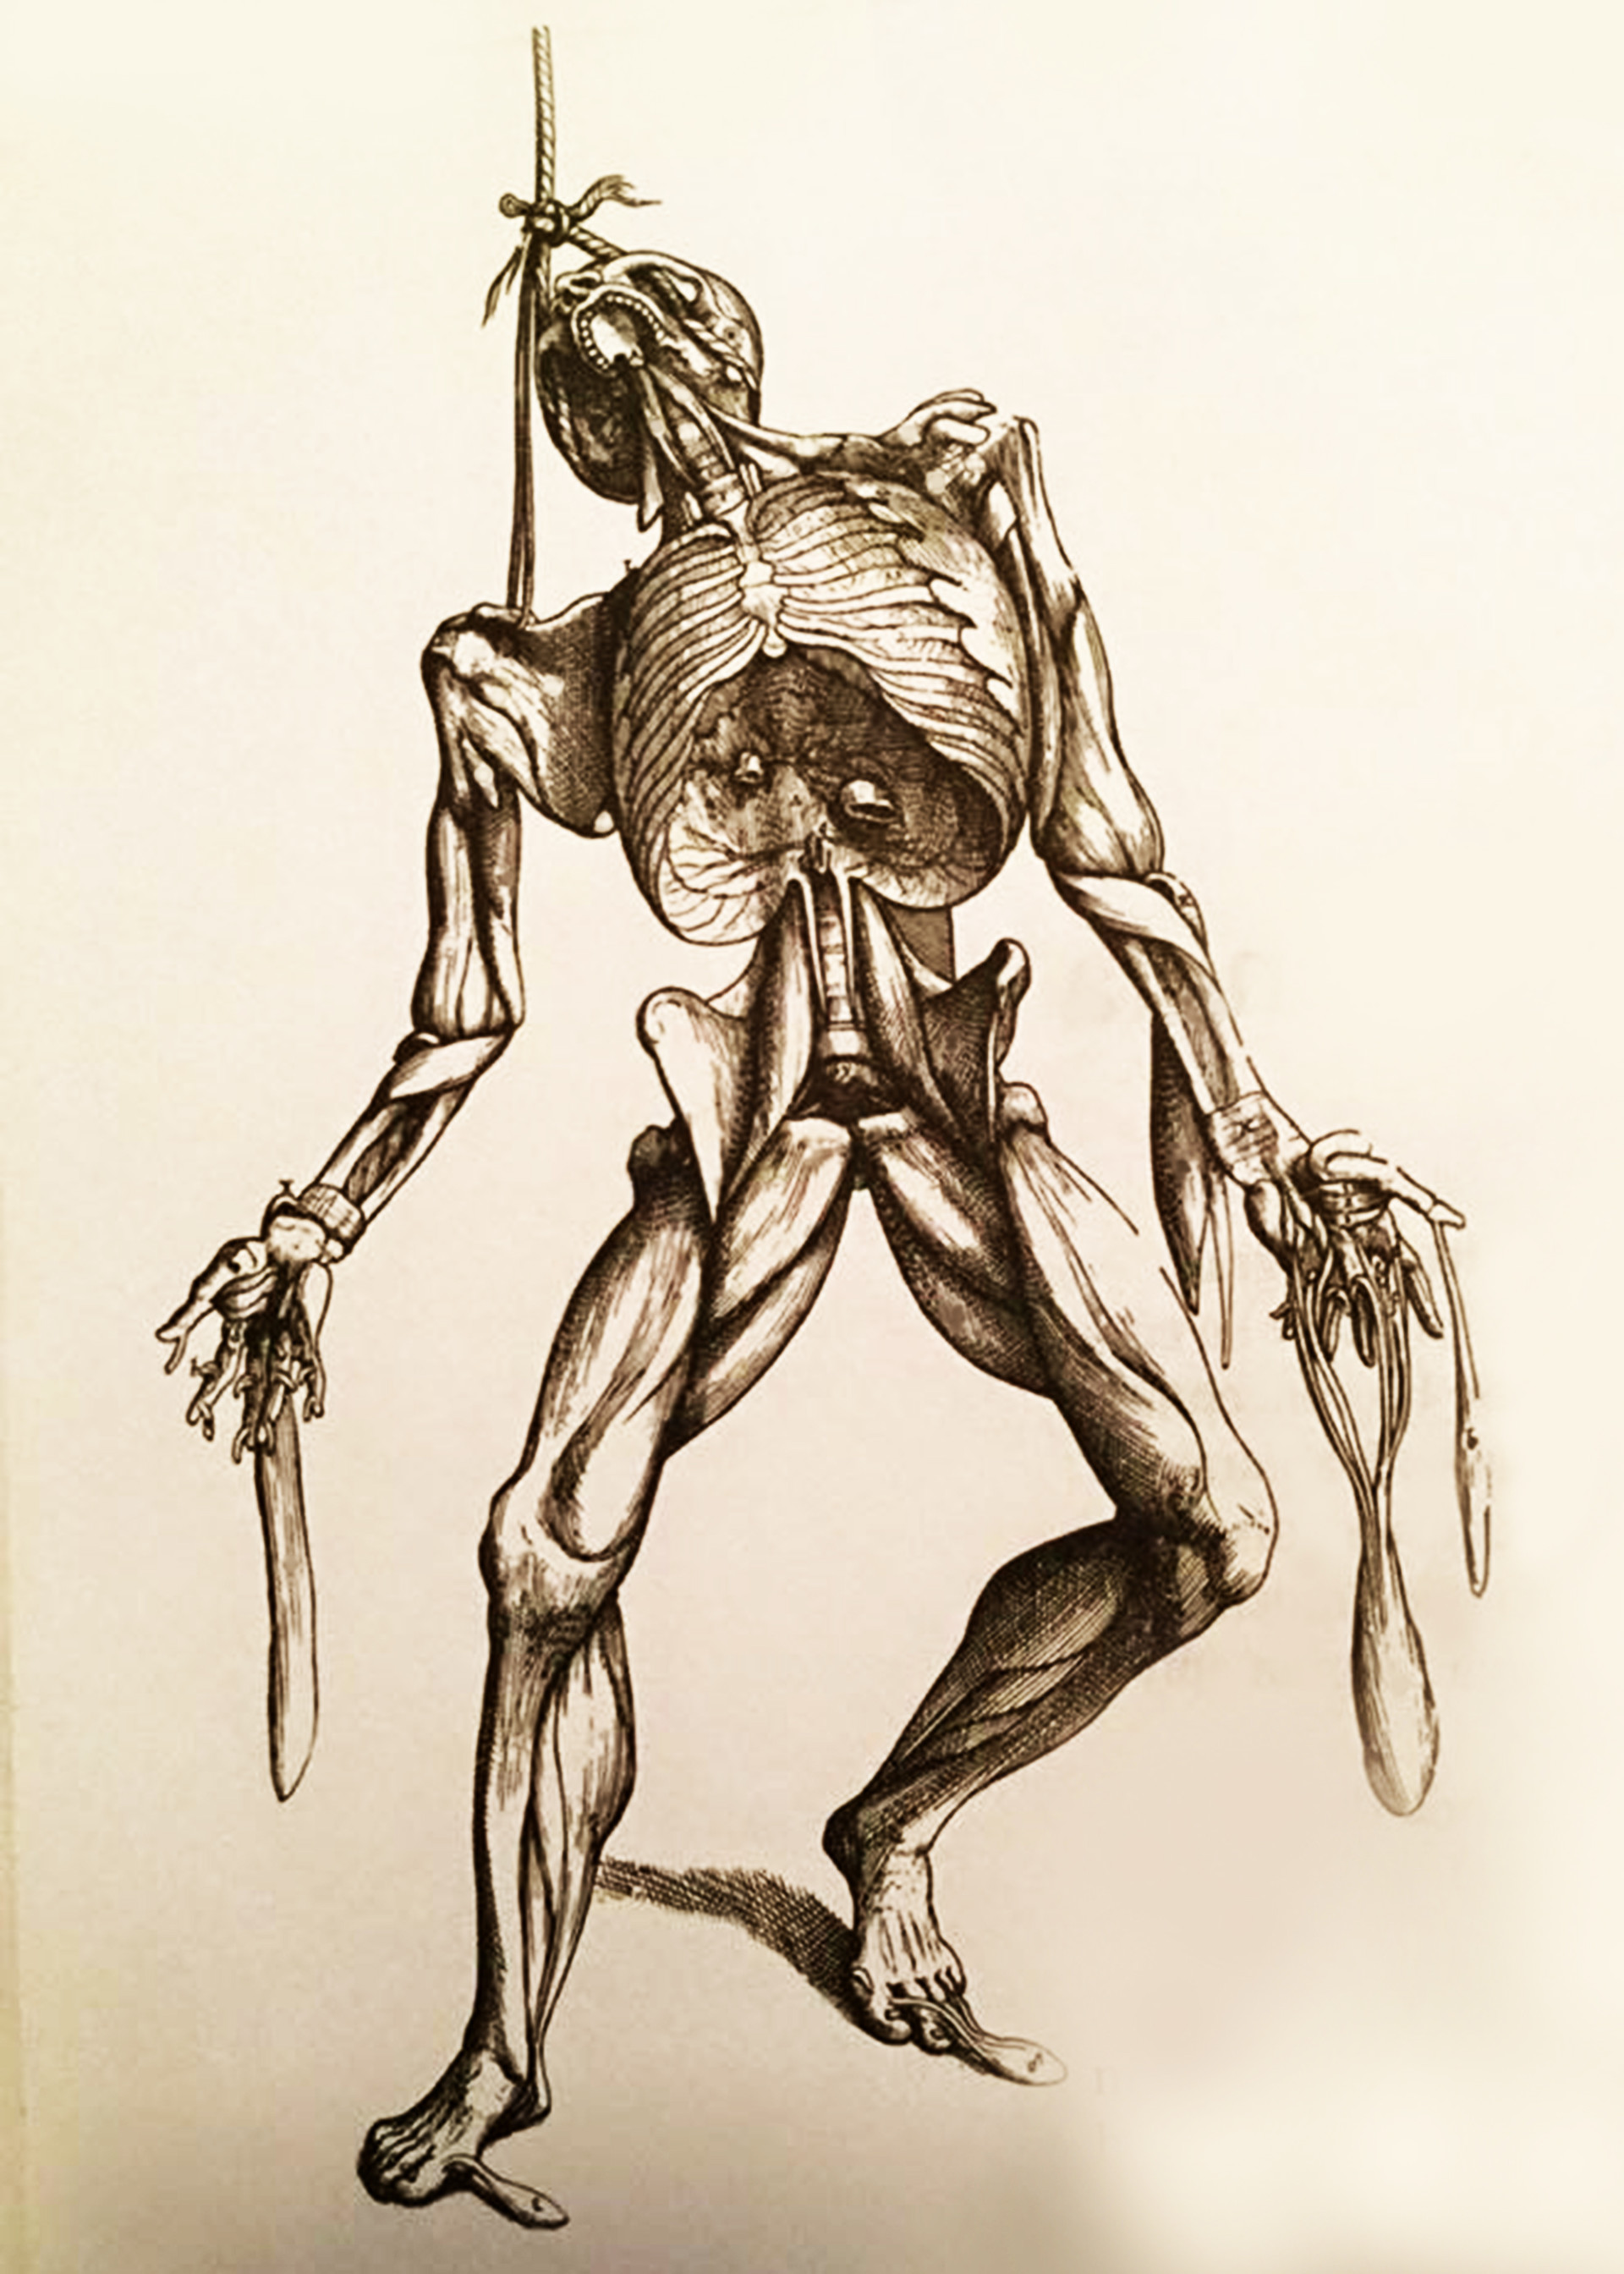 Dead body anatomy